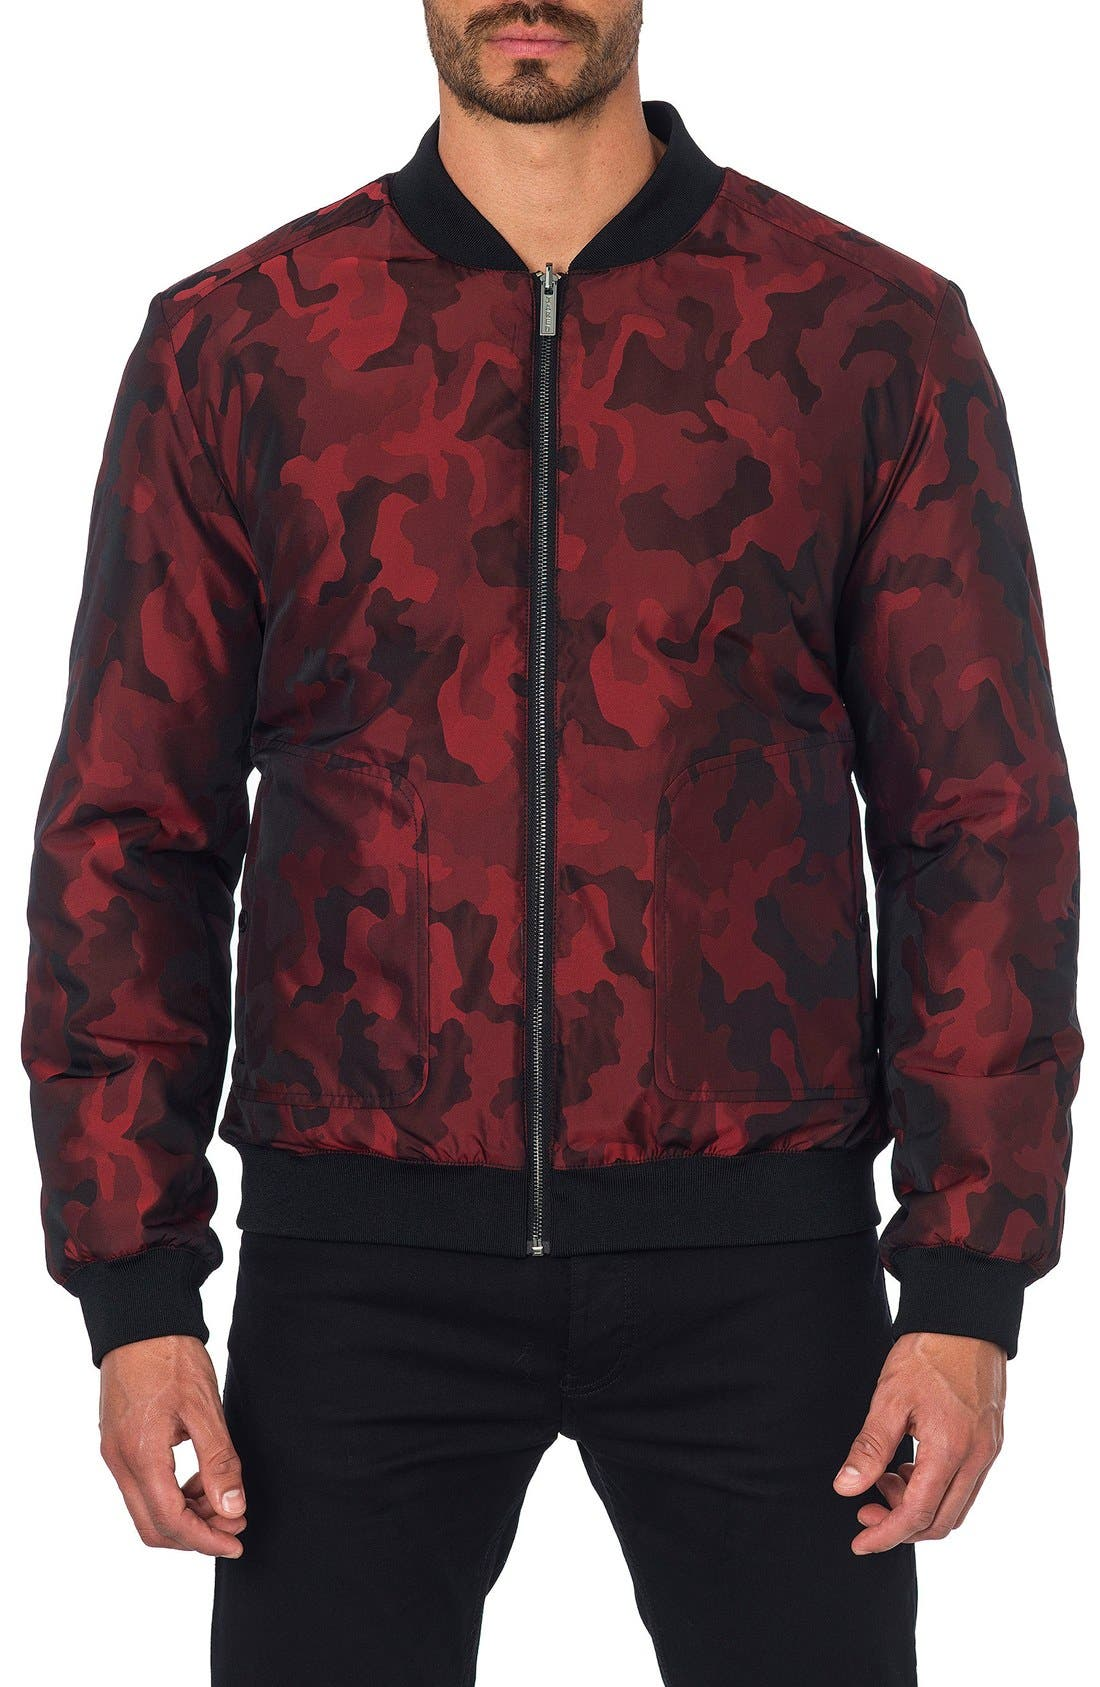 New York Reversible Bomber Jacket,                             Alternate thumbnail 5, color,                             600